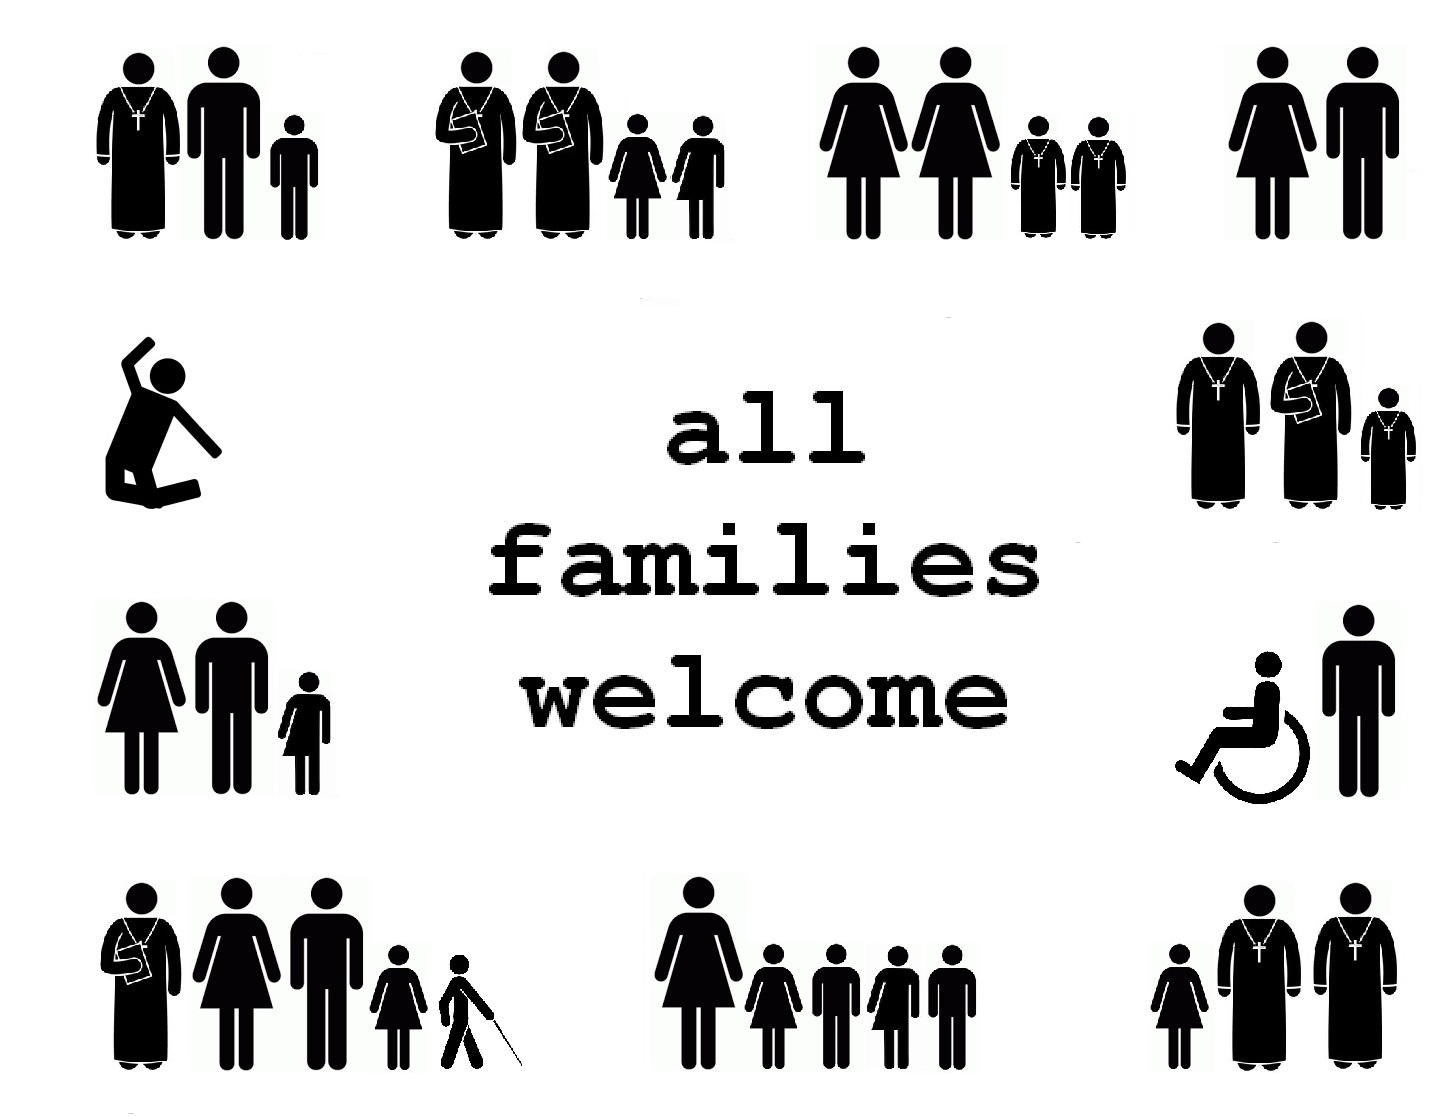 All Families Welcome, Part III: Poster with Many Abilities